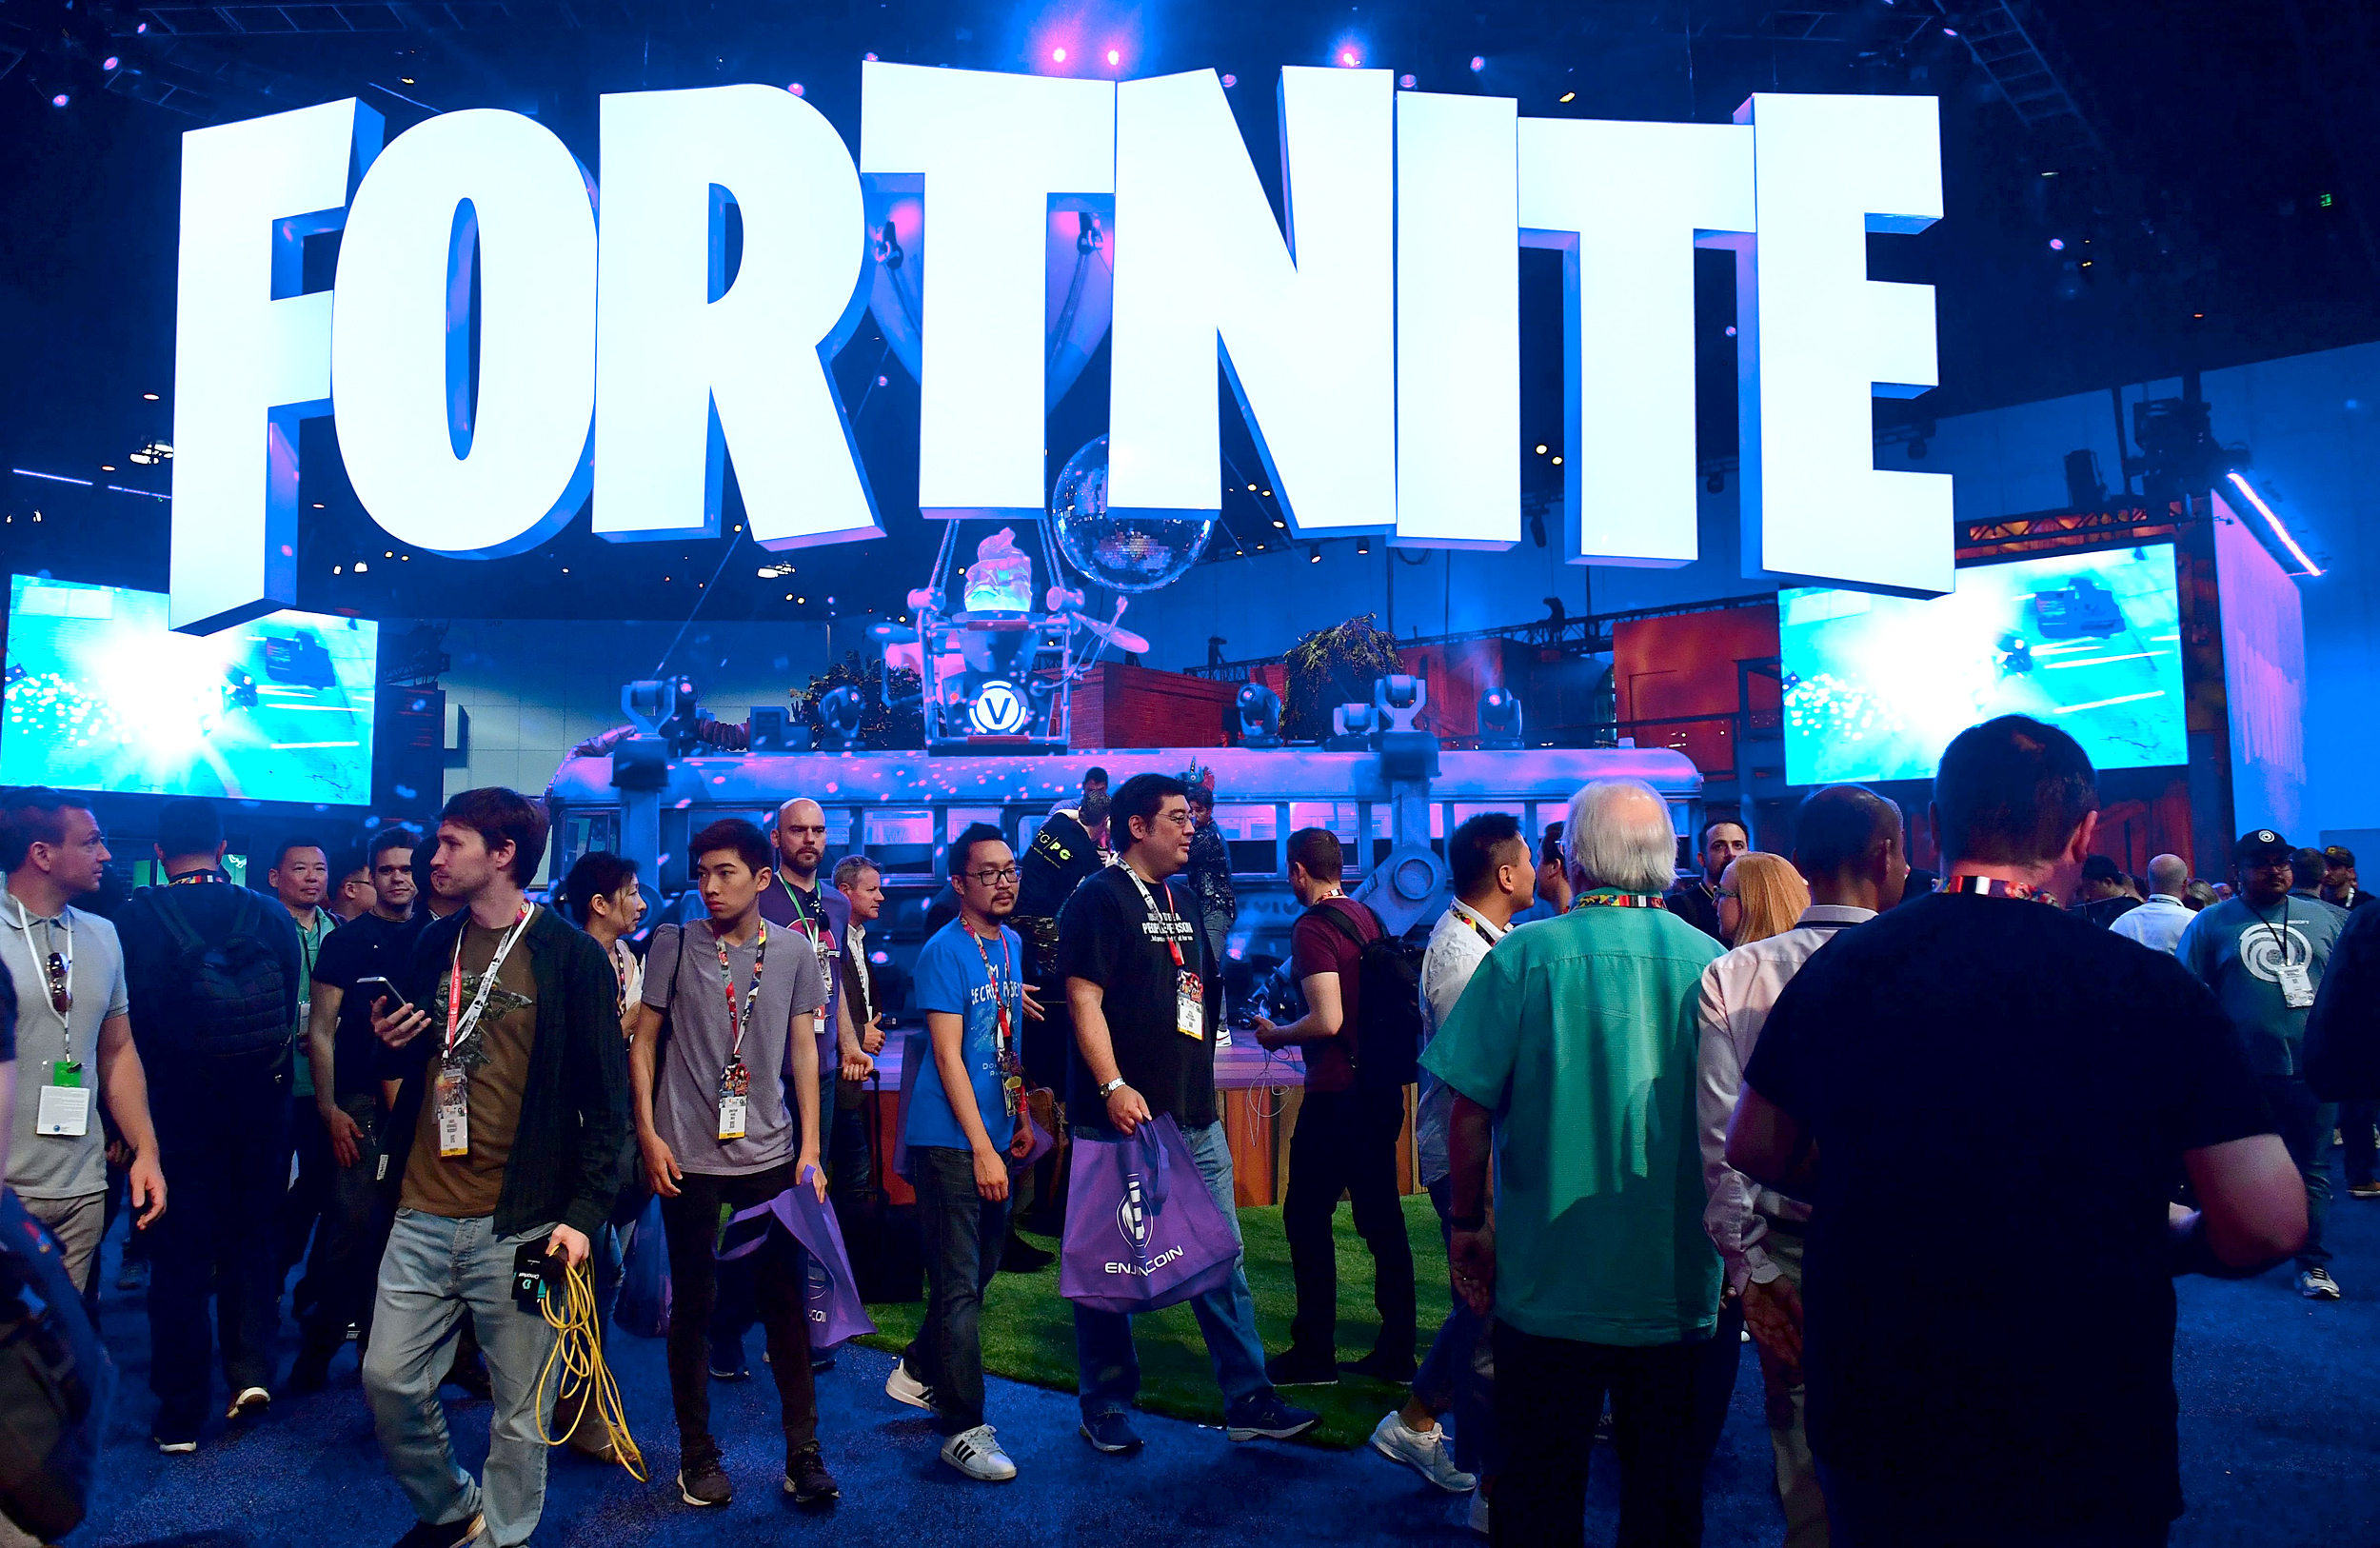 Understanding the Hype Around the Fortnite Video Game